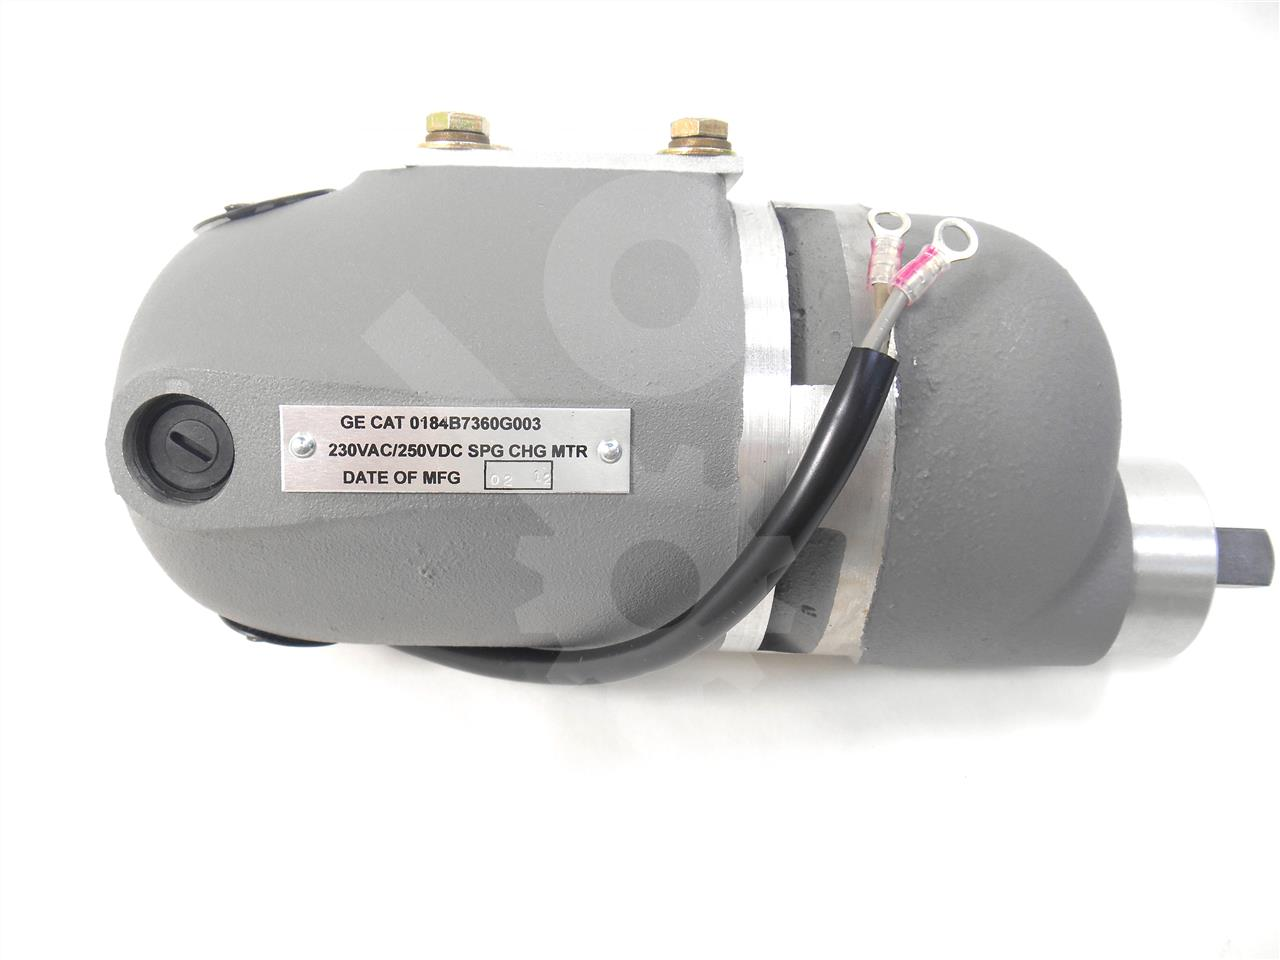 General Electric GE 230VAC / 250VDC CHARGE MOTOR, NEW